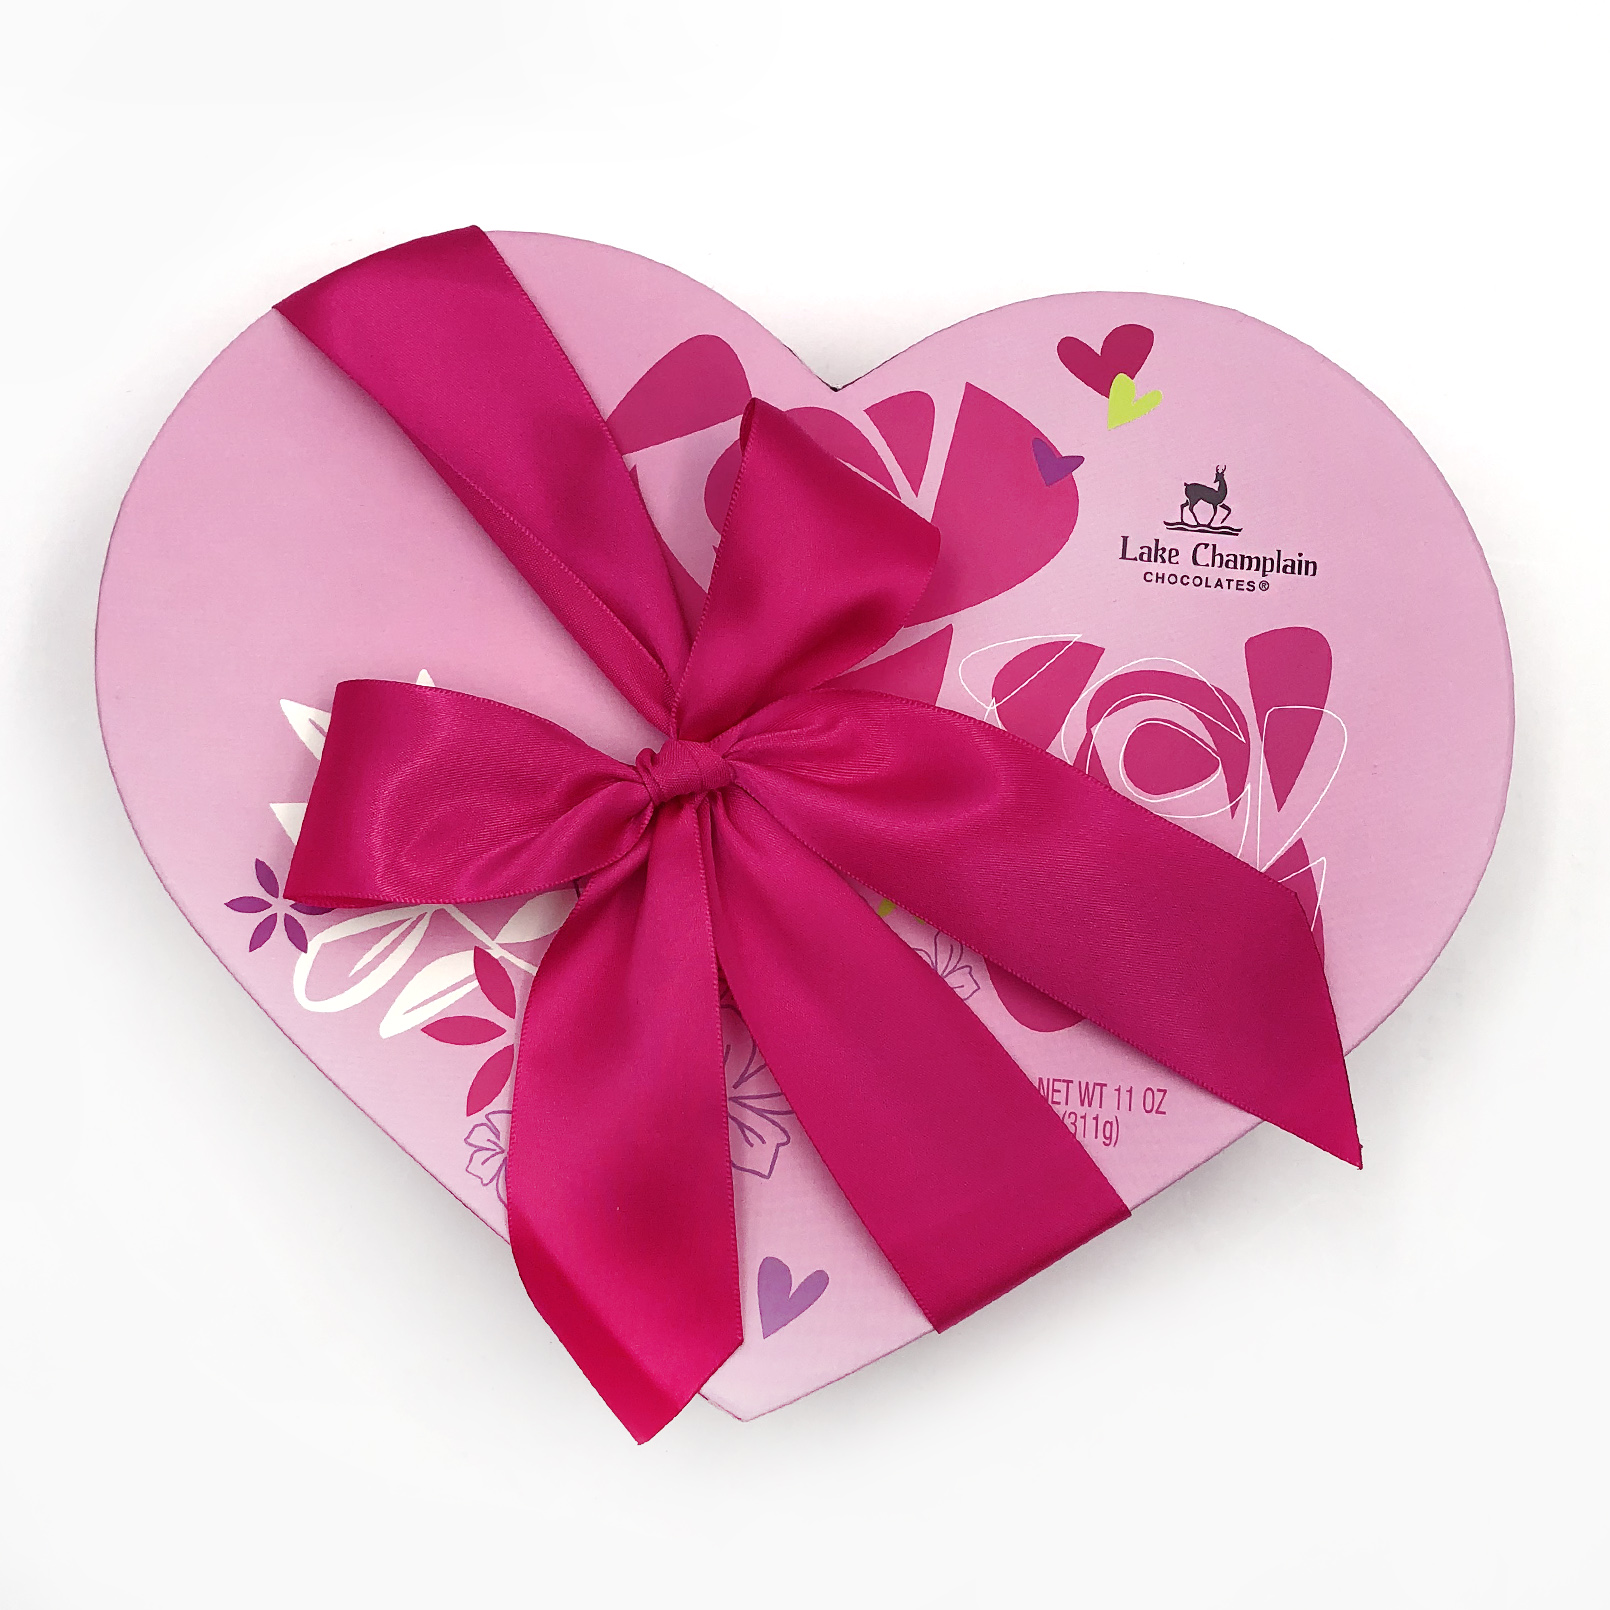 Valentine's Day at Palmer's Market - Chocolates by Lake Champlain